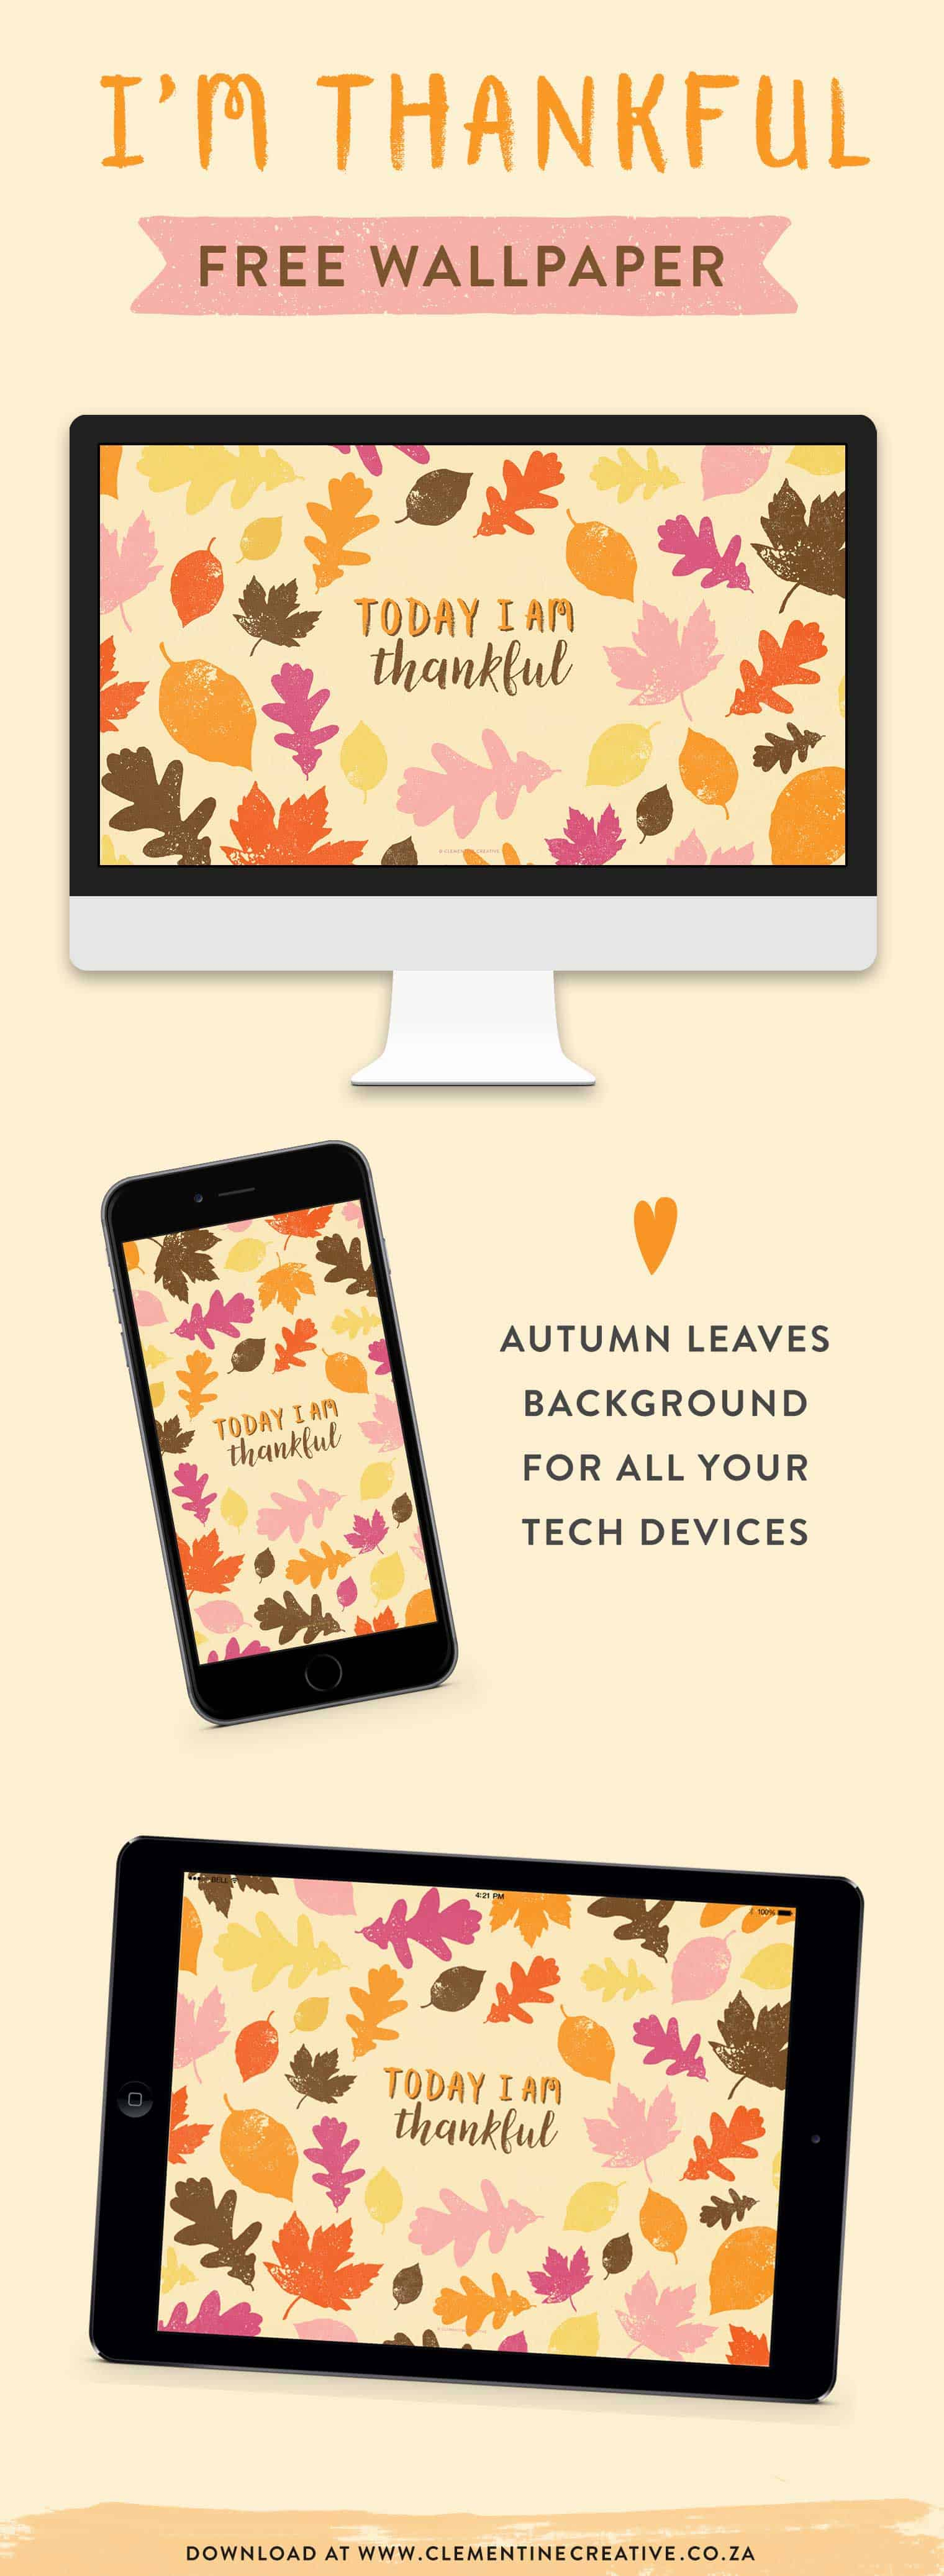 free autumn leaves Thanksgiving wallpaper background